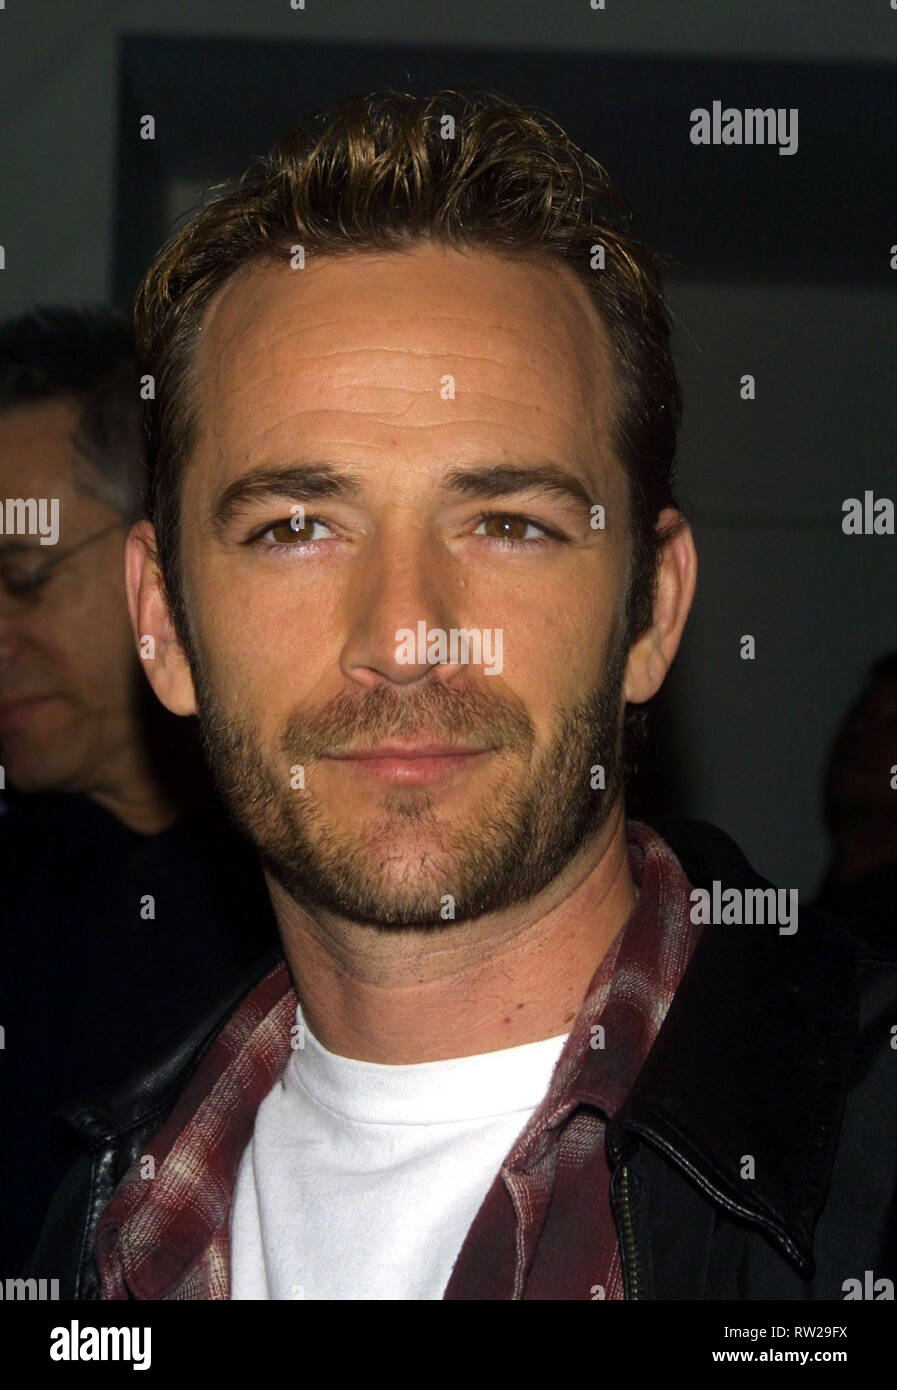 Actor LUKE PERRY (11 October 1966 - 4 March 2019) best known for his